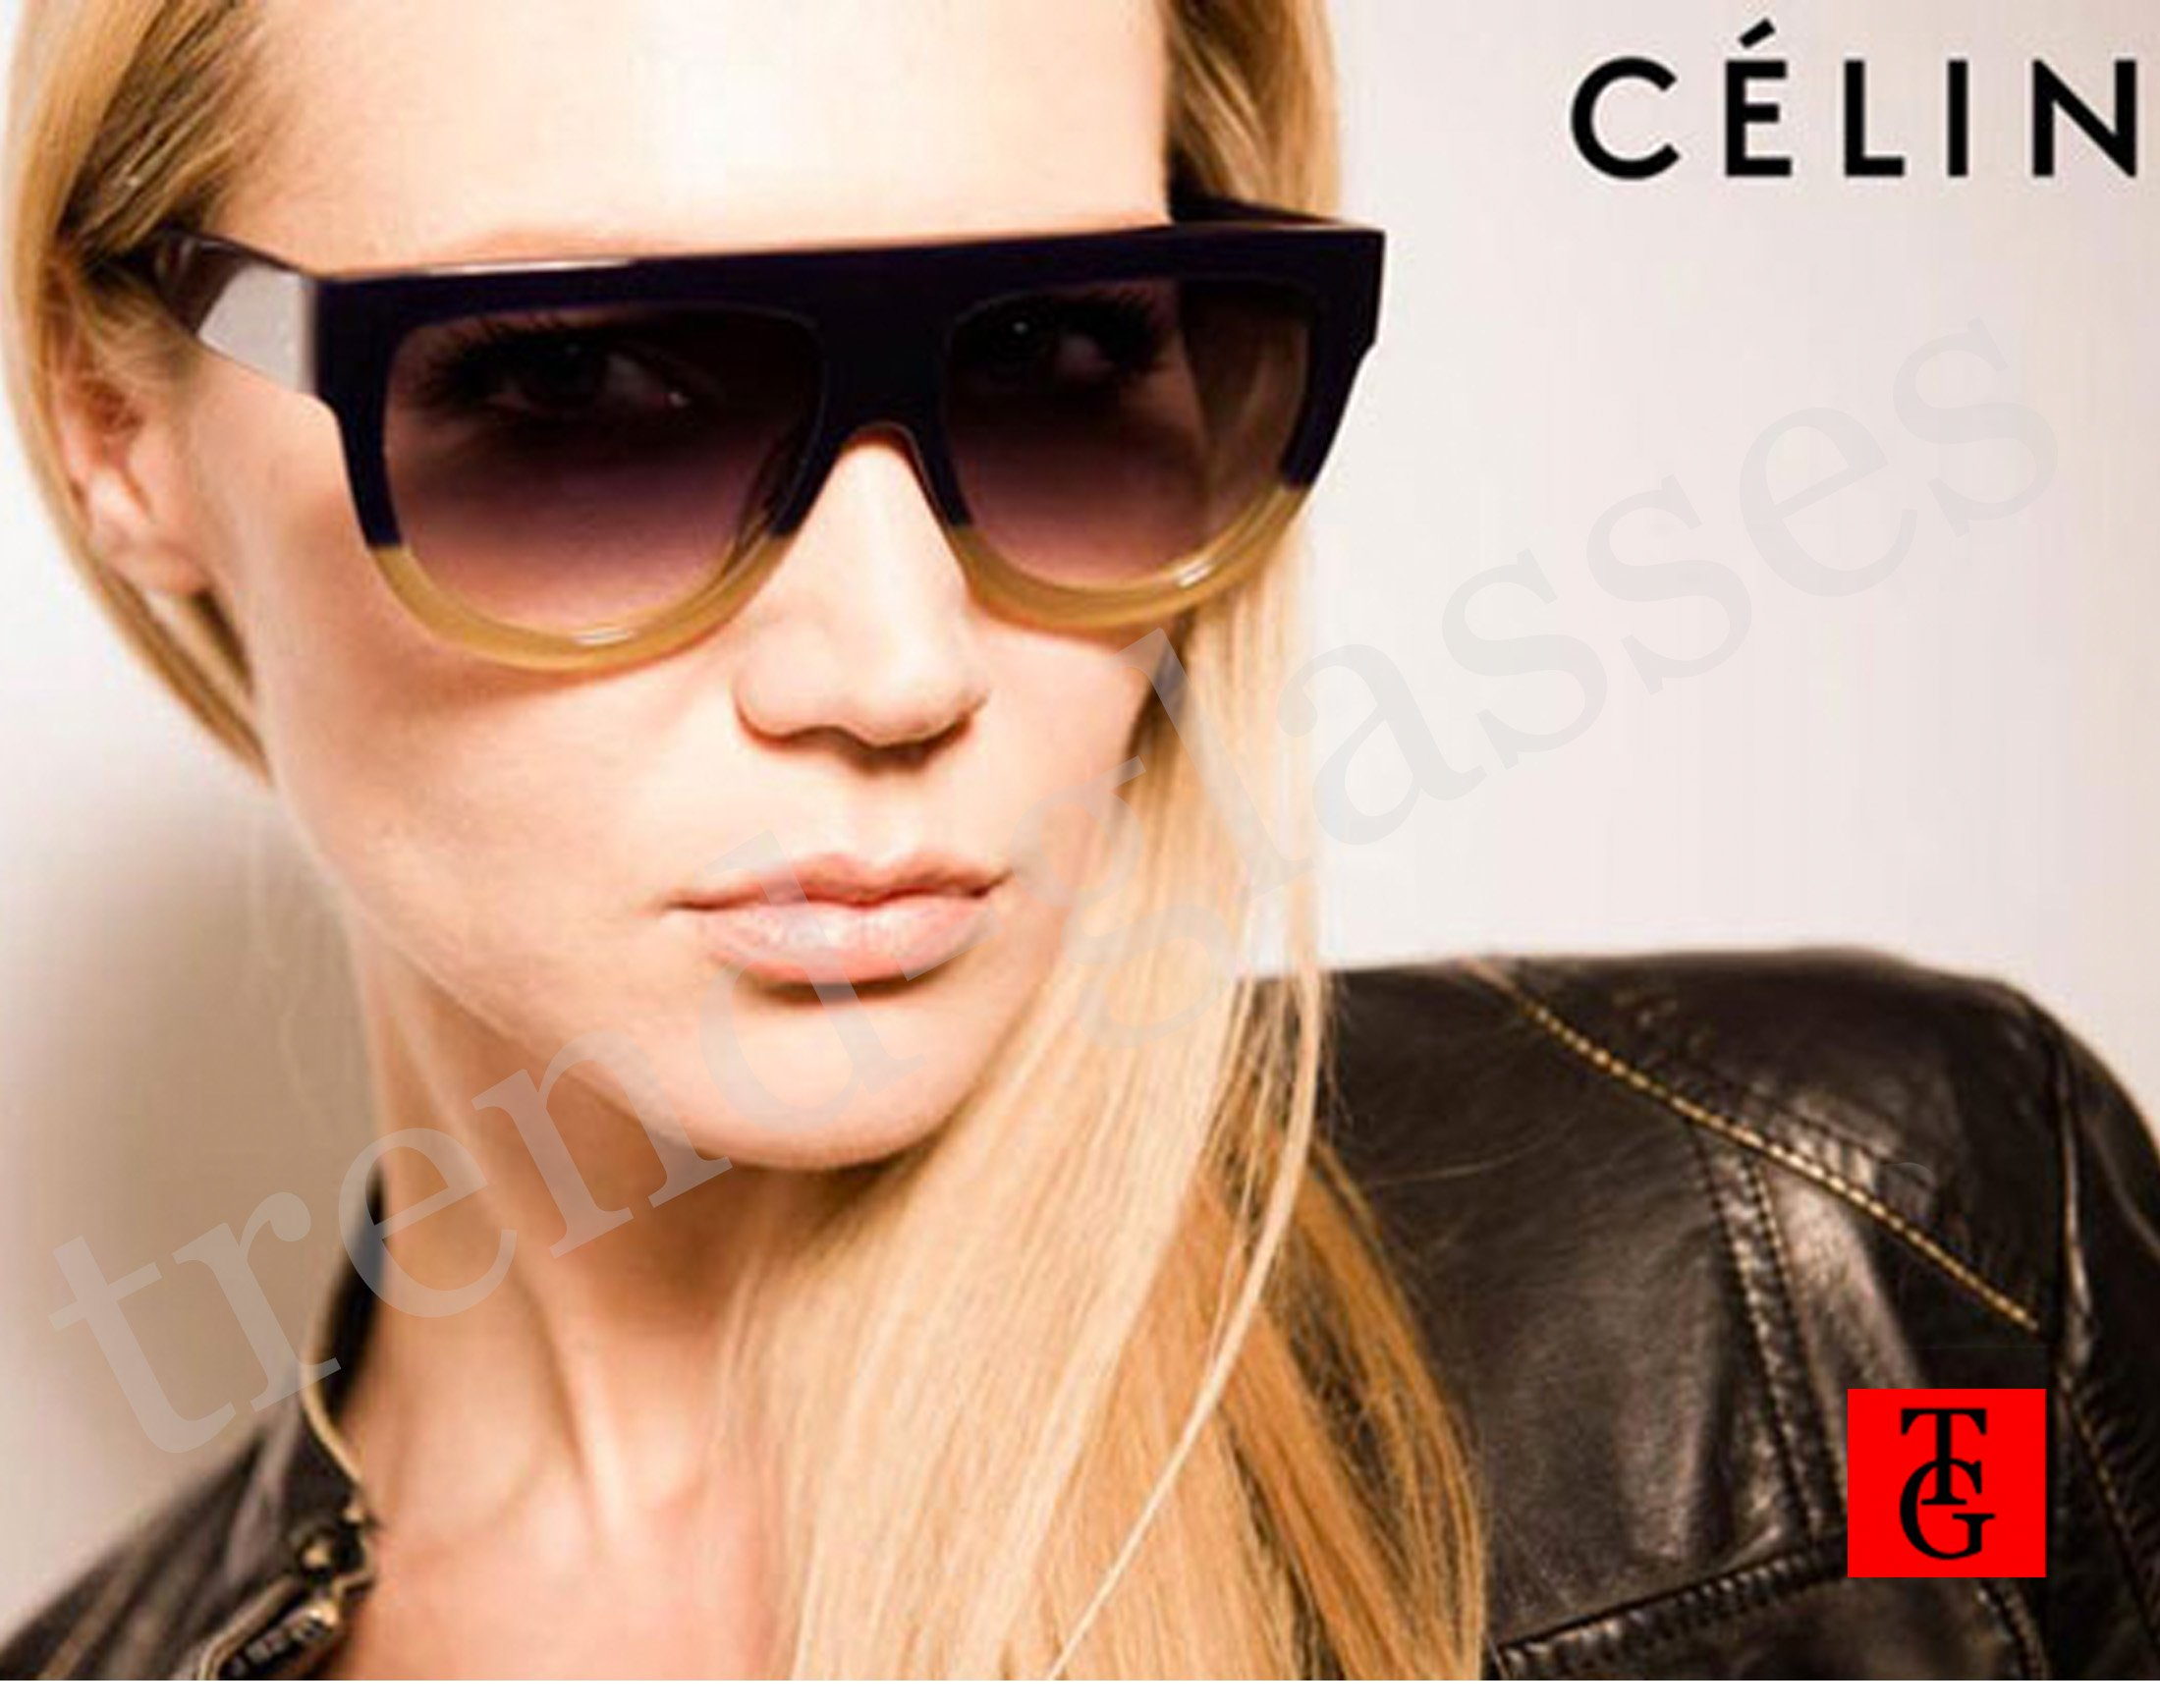 http://trend-glasses.ru/images/upload/ПР77fihiuhftныпyfgsyЕР.jpg